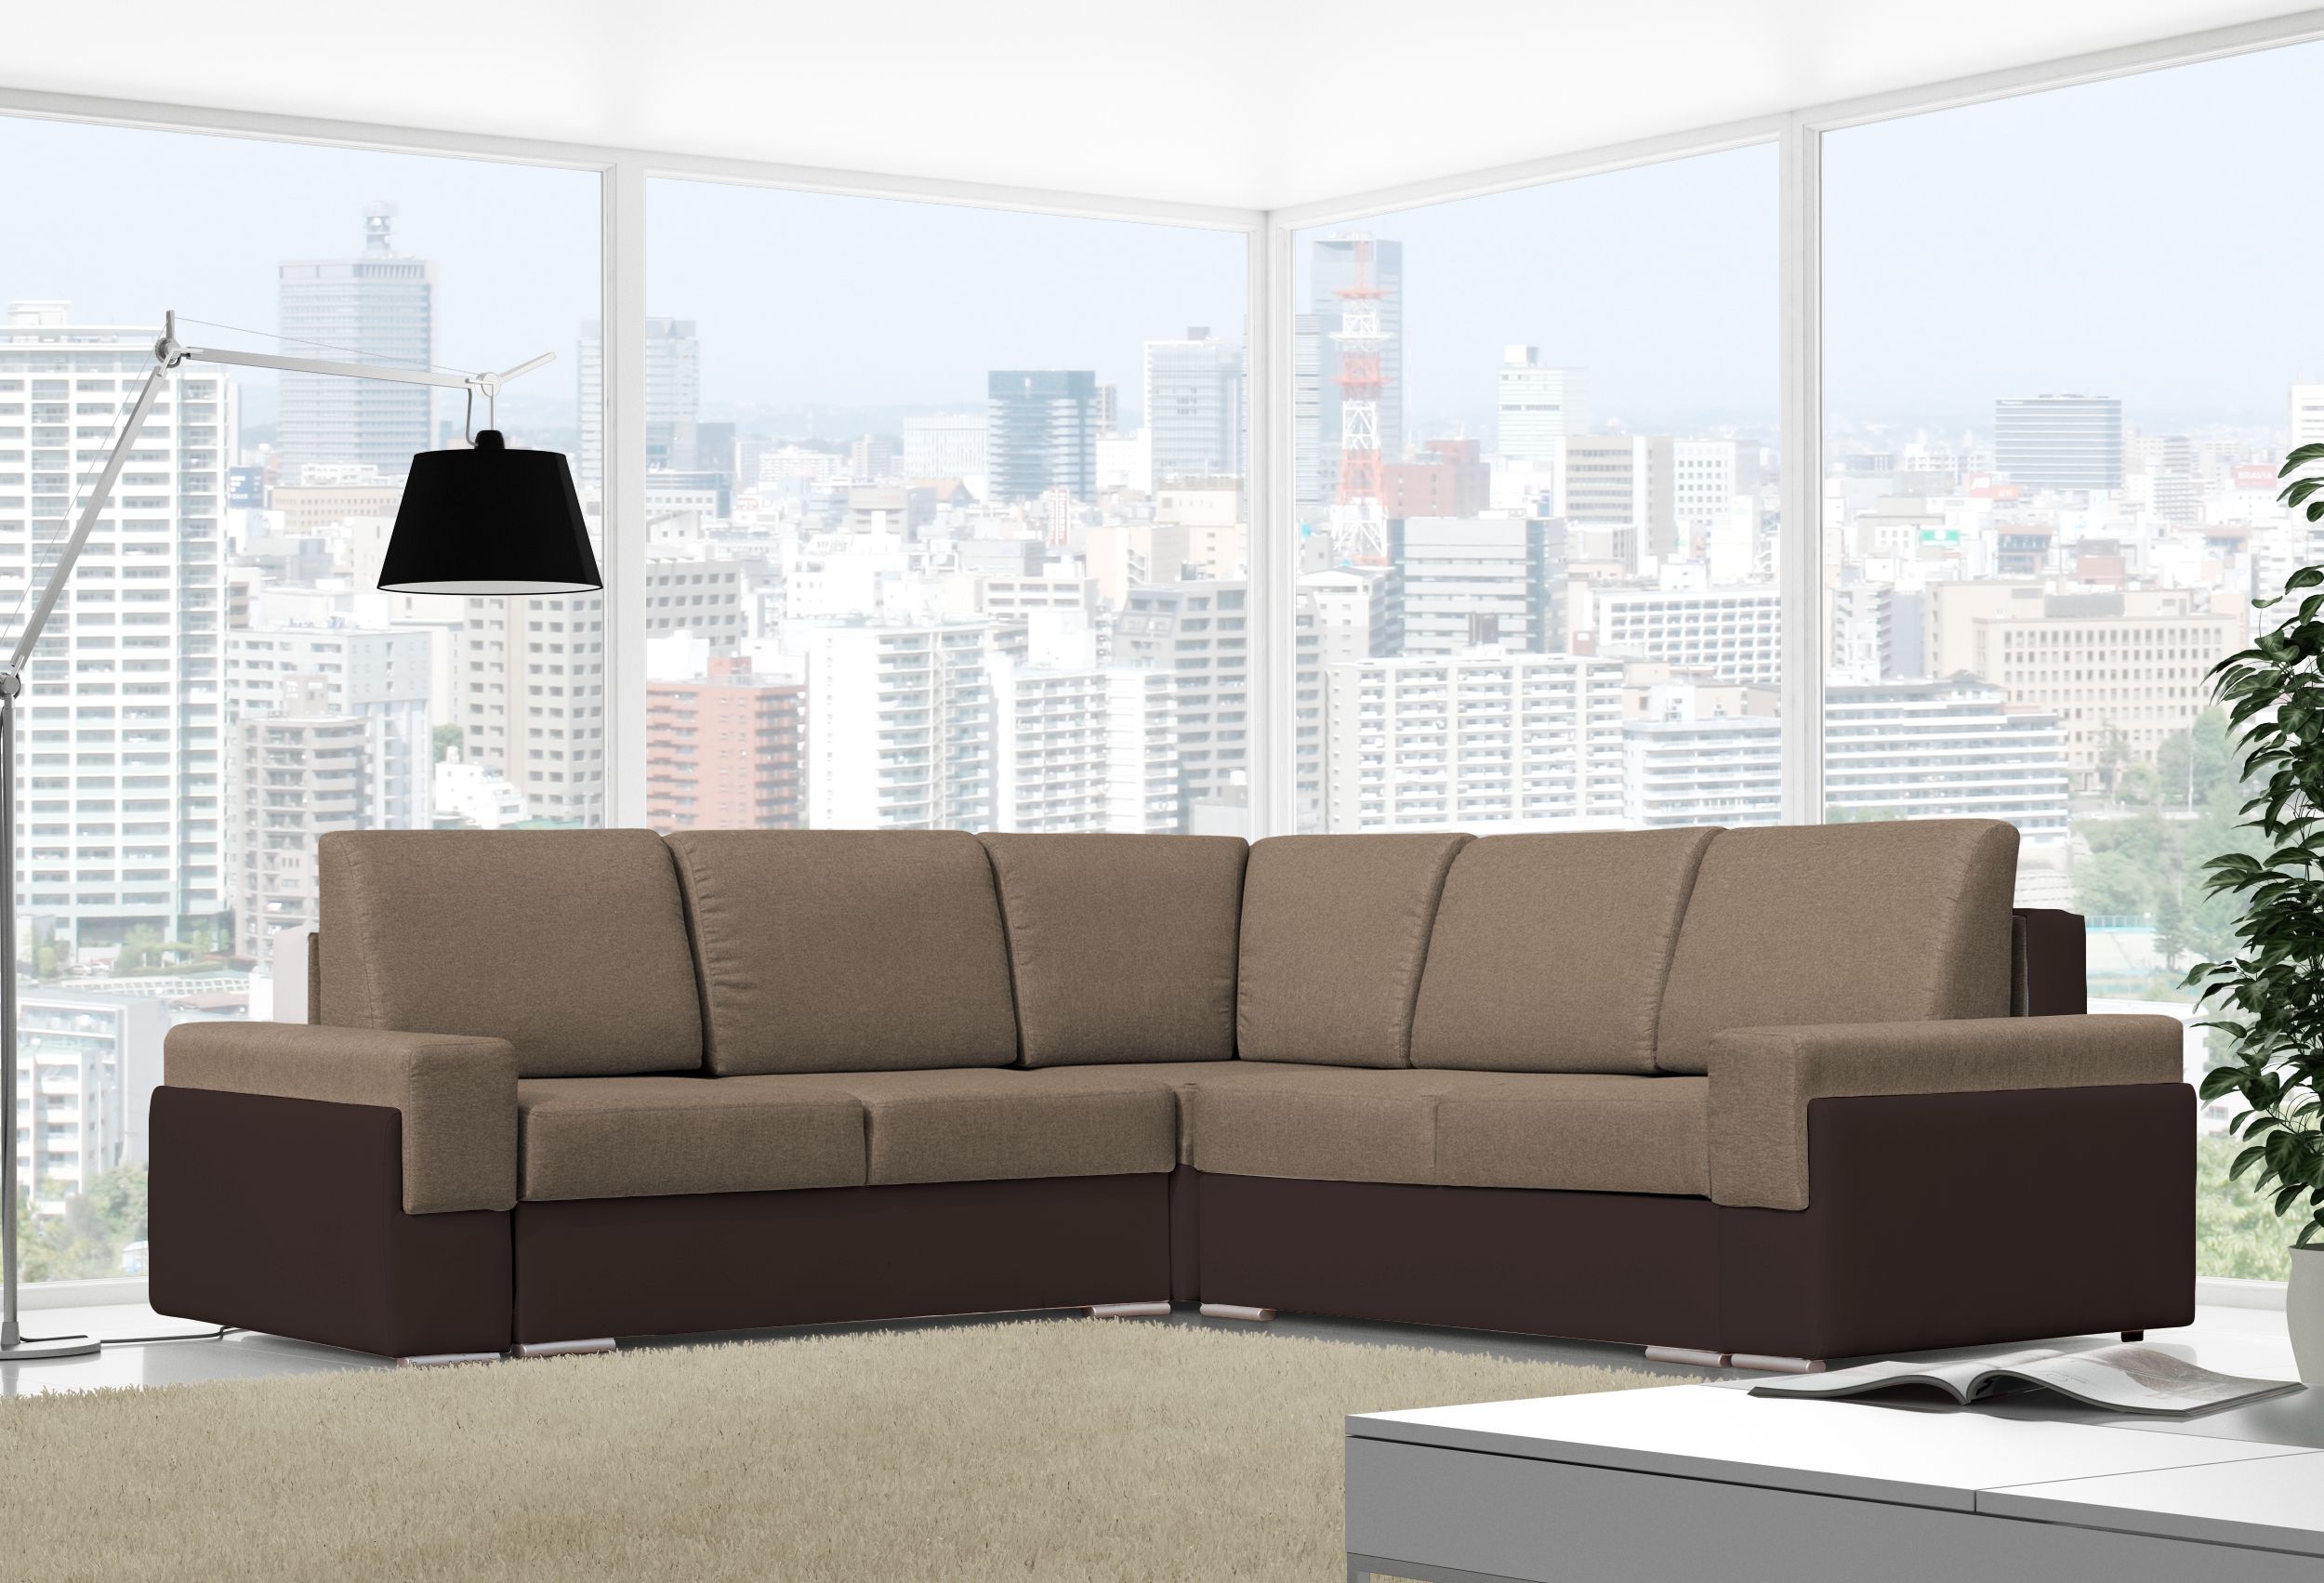 gro es ecksofa mit schlaffunktion eckcouch sofa polsterecke grau xxl bruno iii ebay. Black Bedroom Furniture Sets. Home Design Ideas